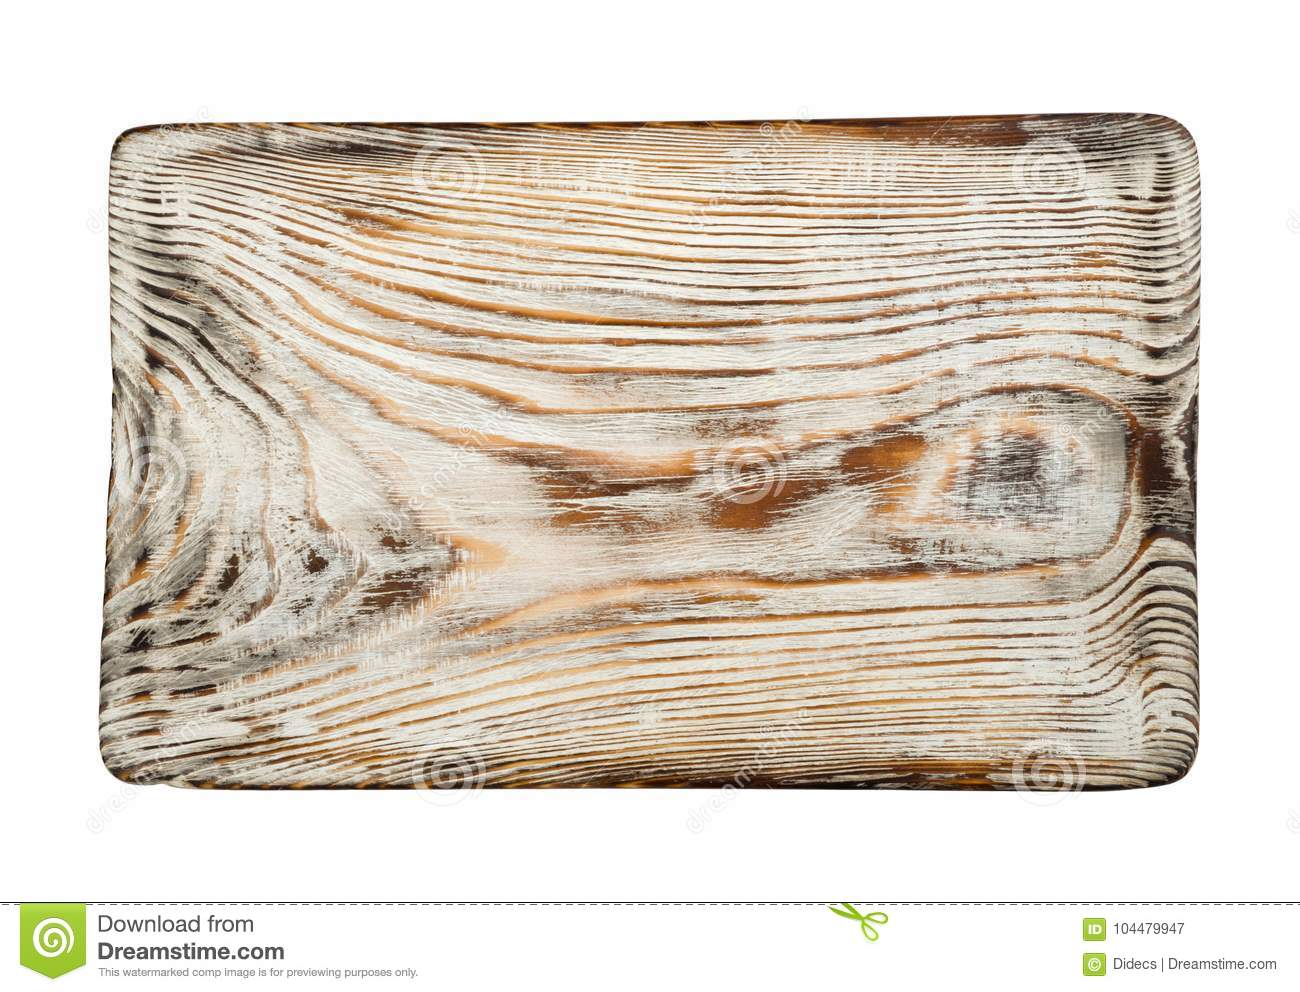 Vintage bleached cutting board top view isolated on white background